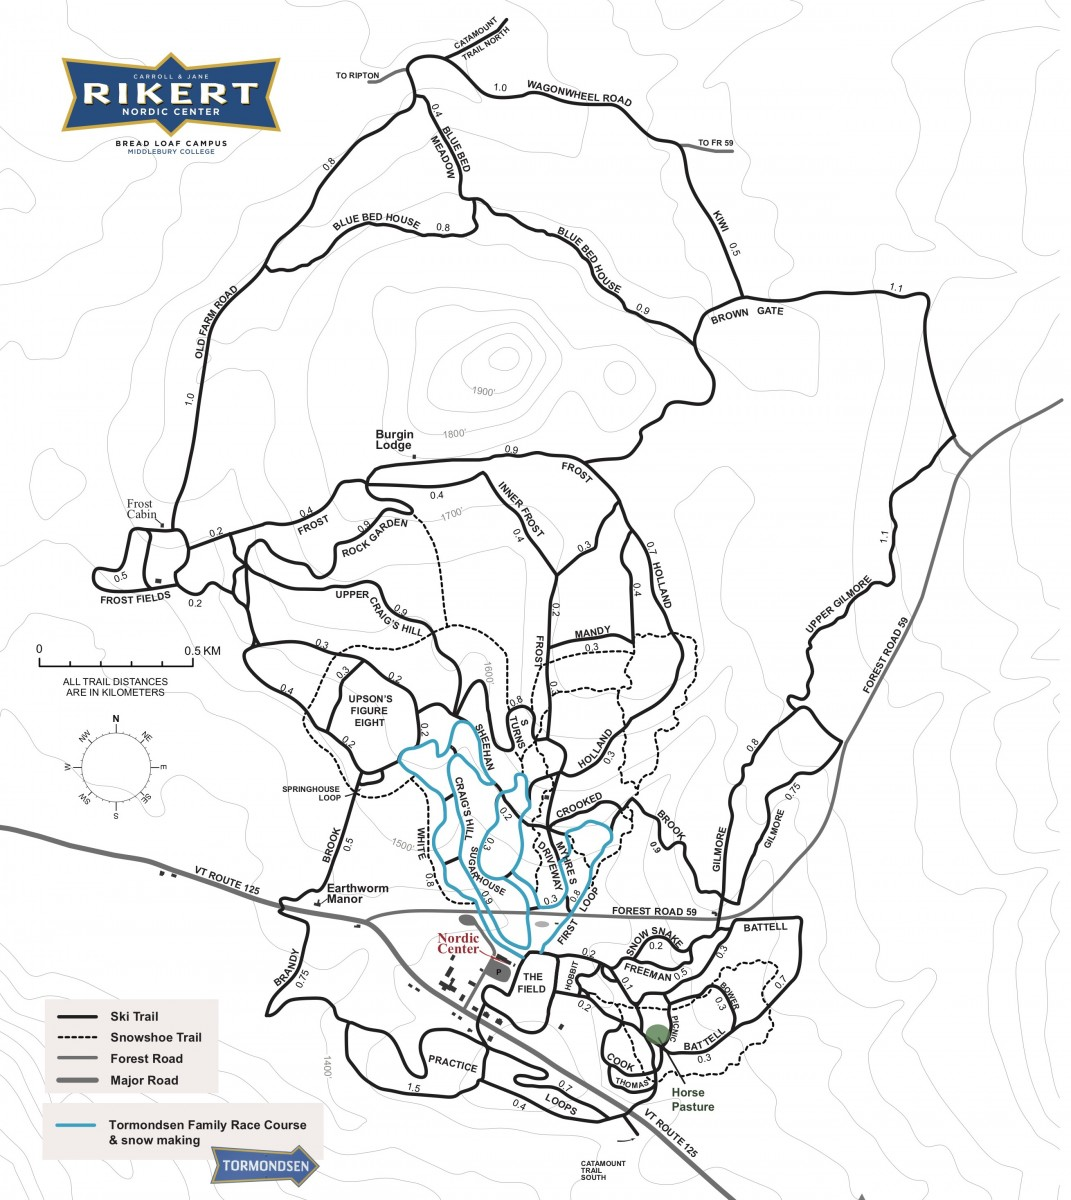 Rikert Nordic Center Trail Map